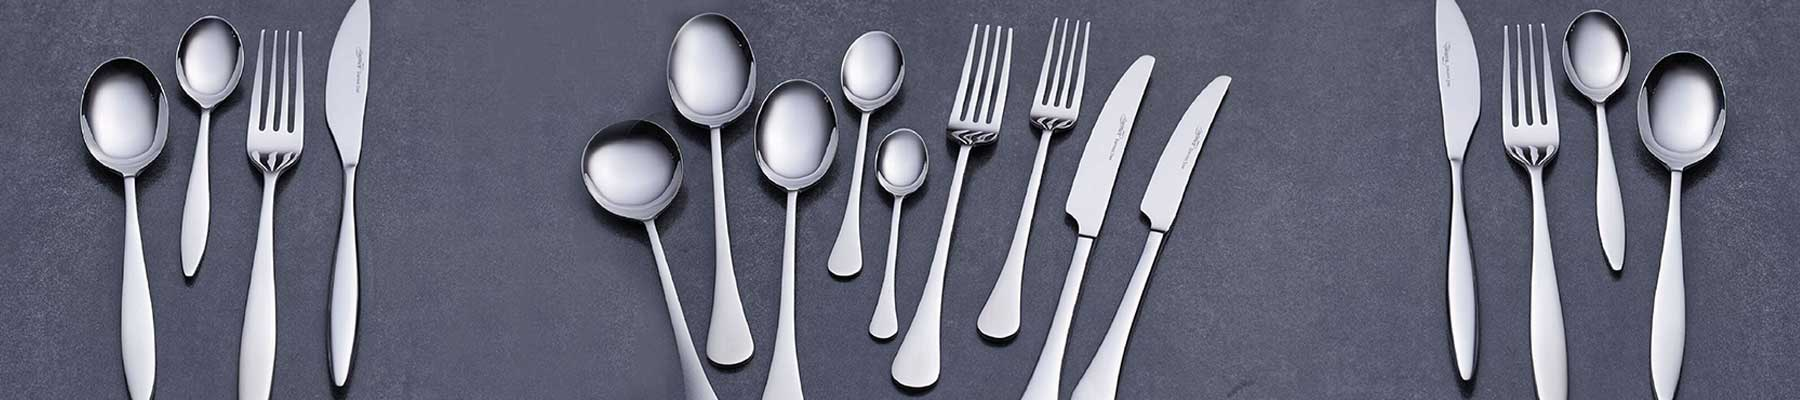 cutlery-catering-supplies